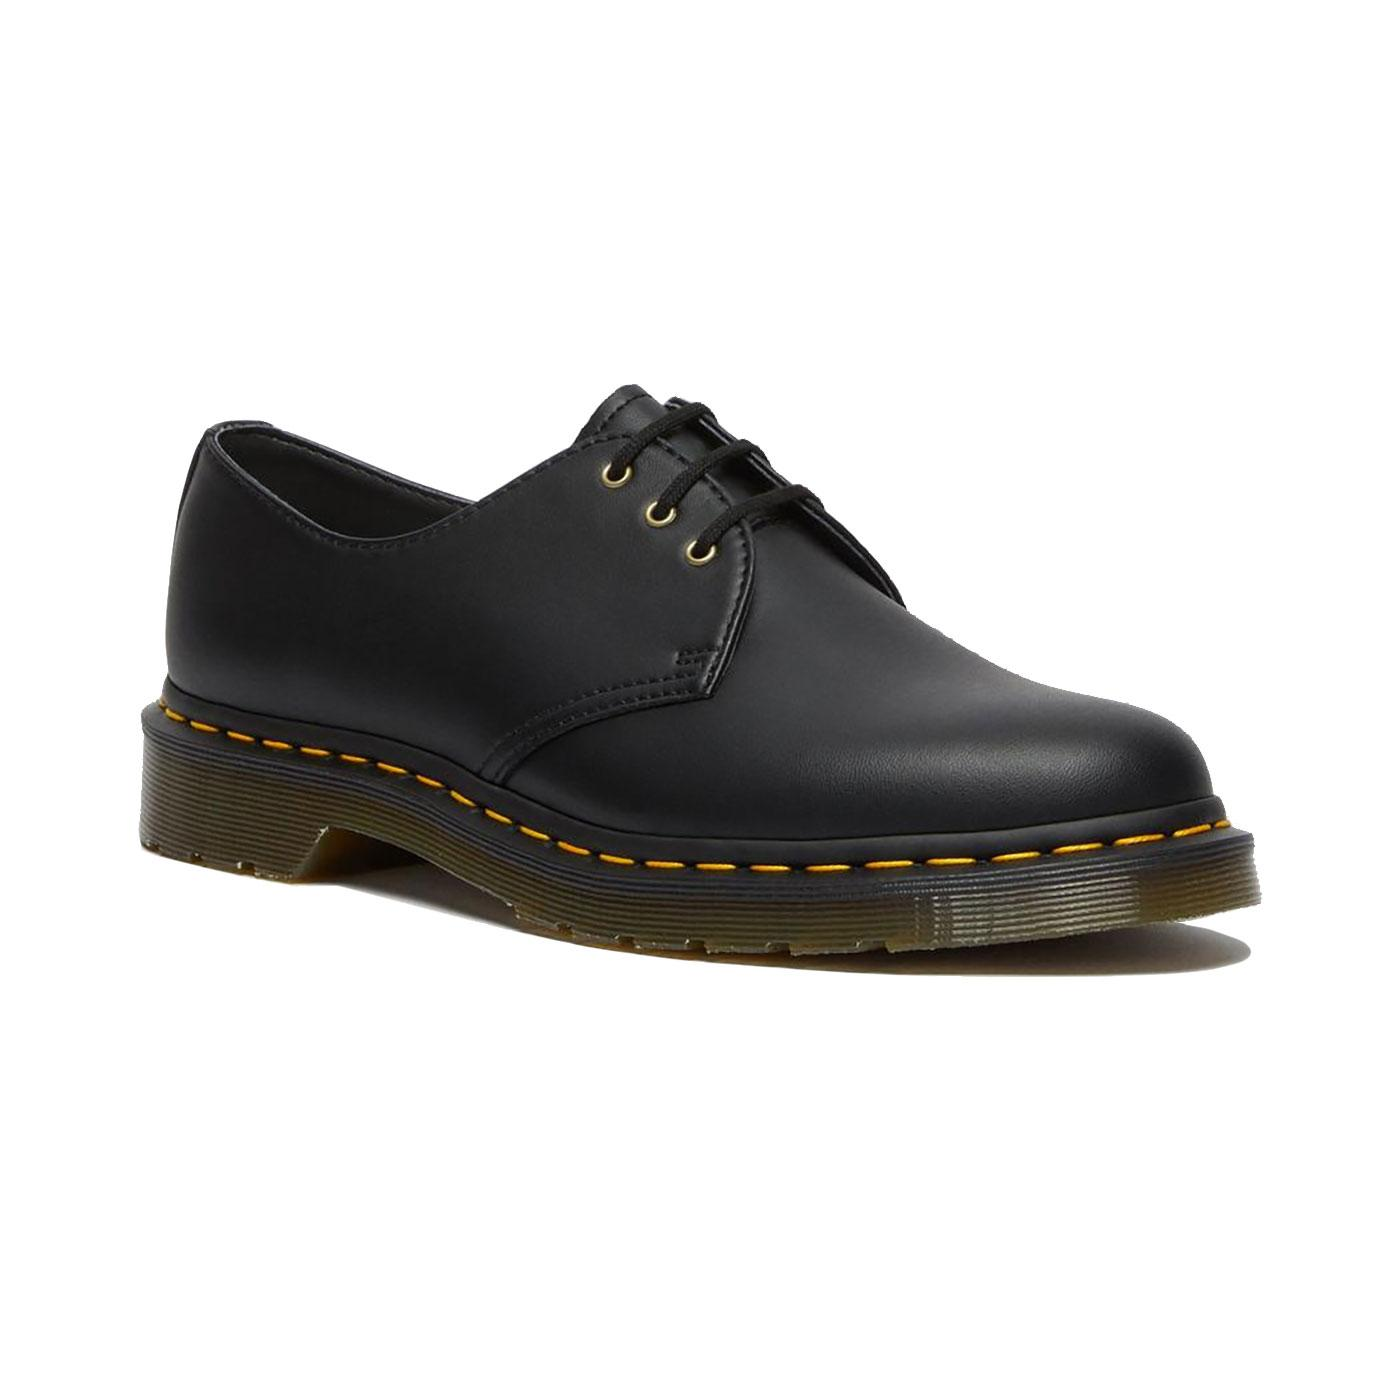 Vegan 1461 DR MARTENS Womens Smooth Oxford Shoes